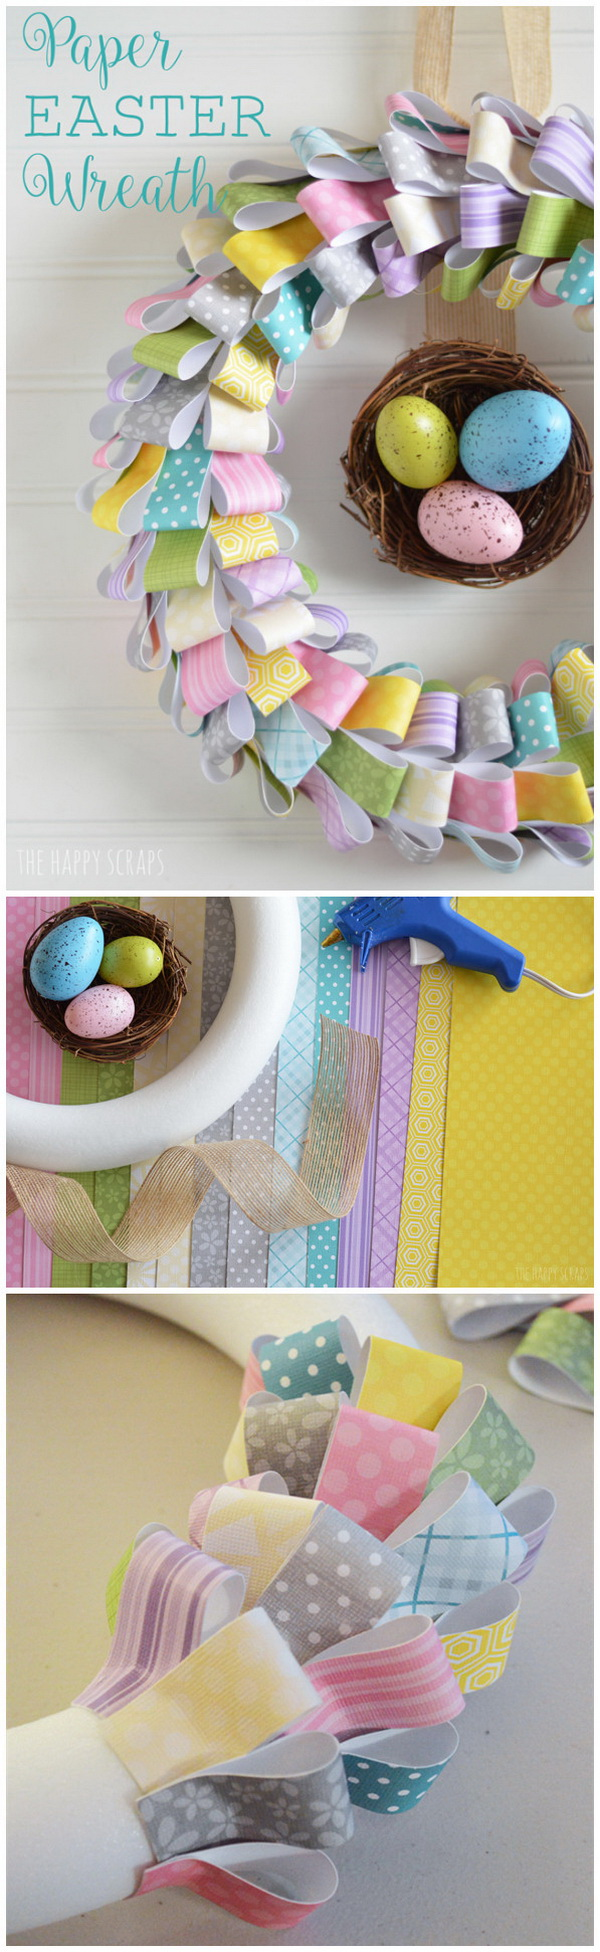 DIY Easter Decoration Ideas: Paper Easter Wreath.